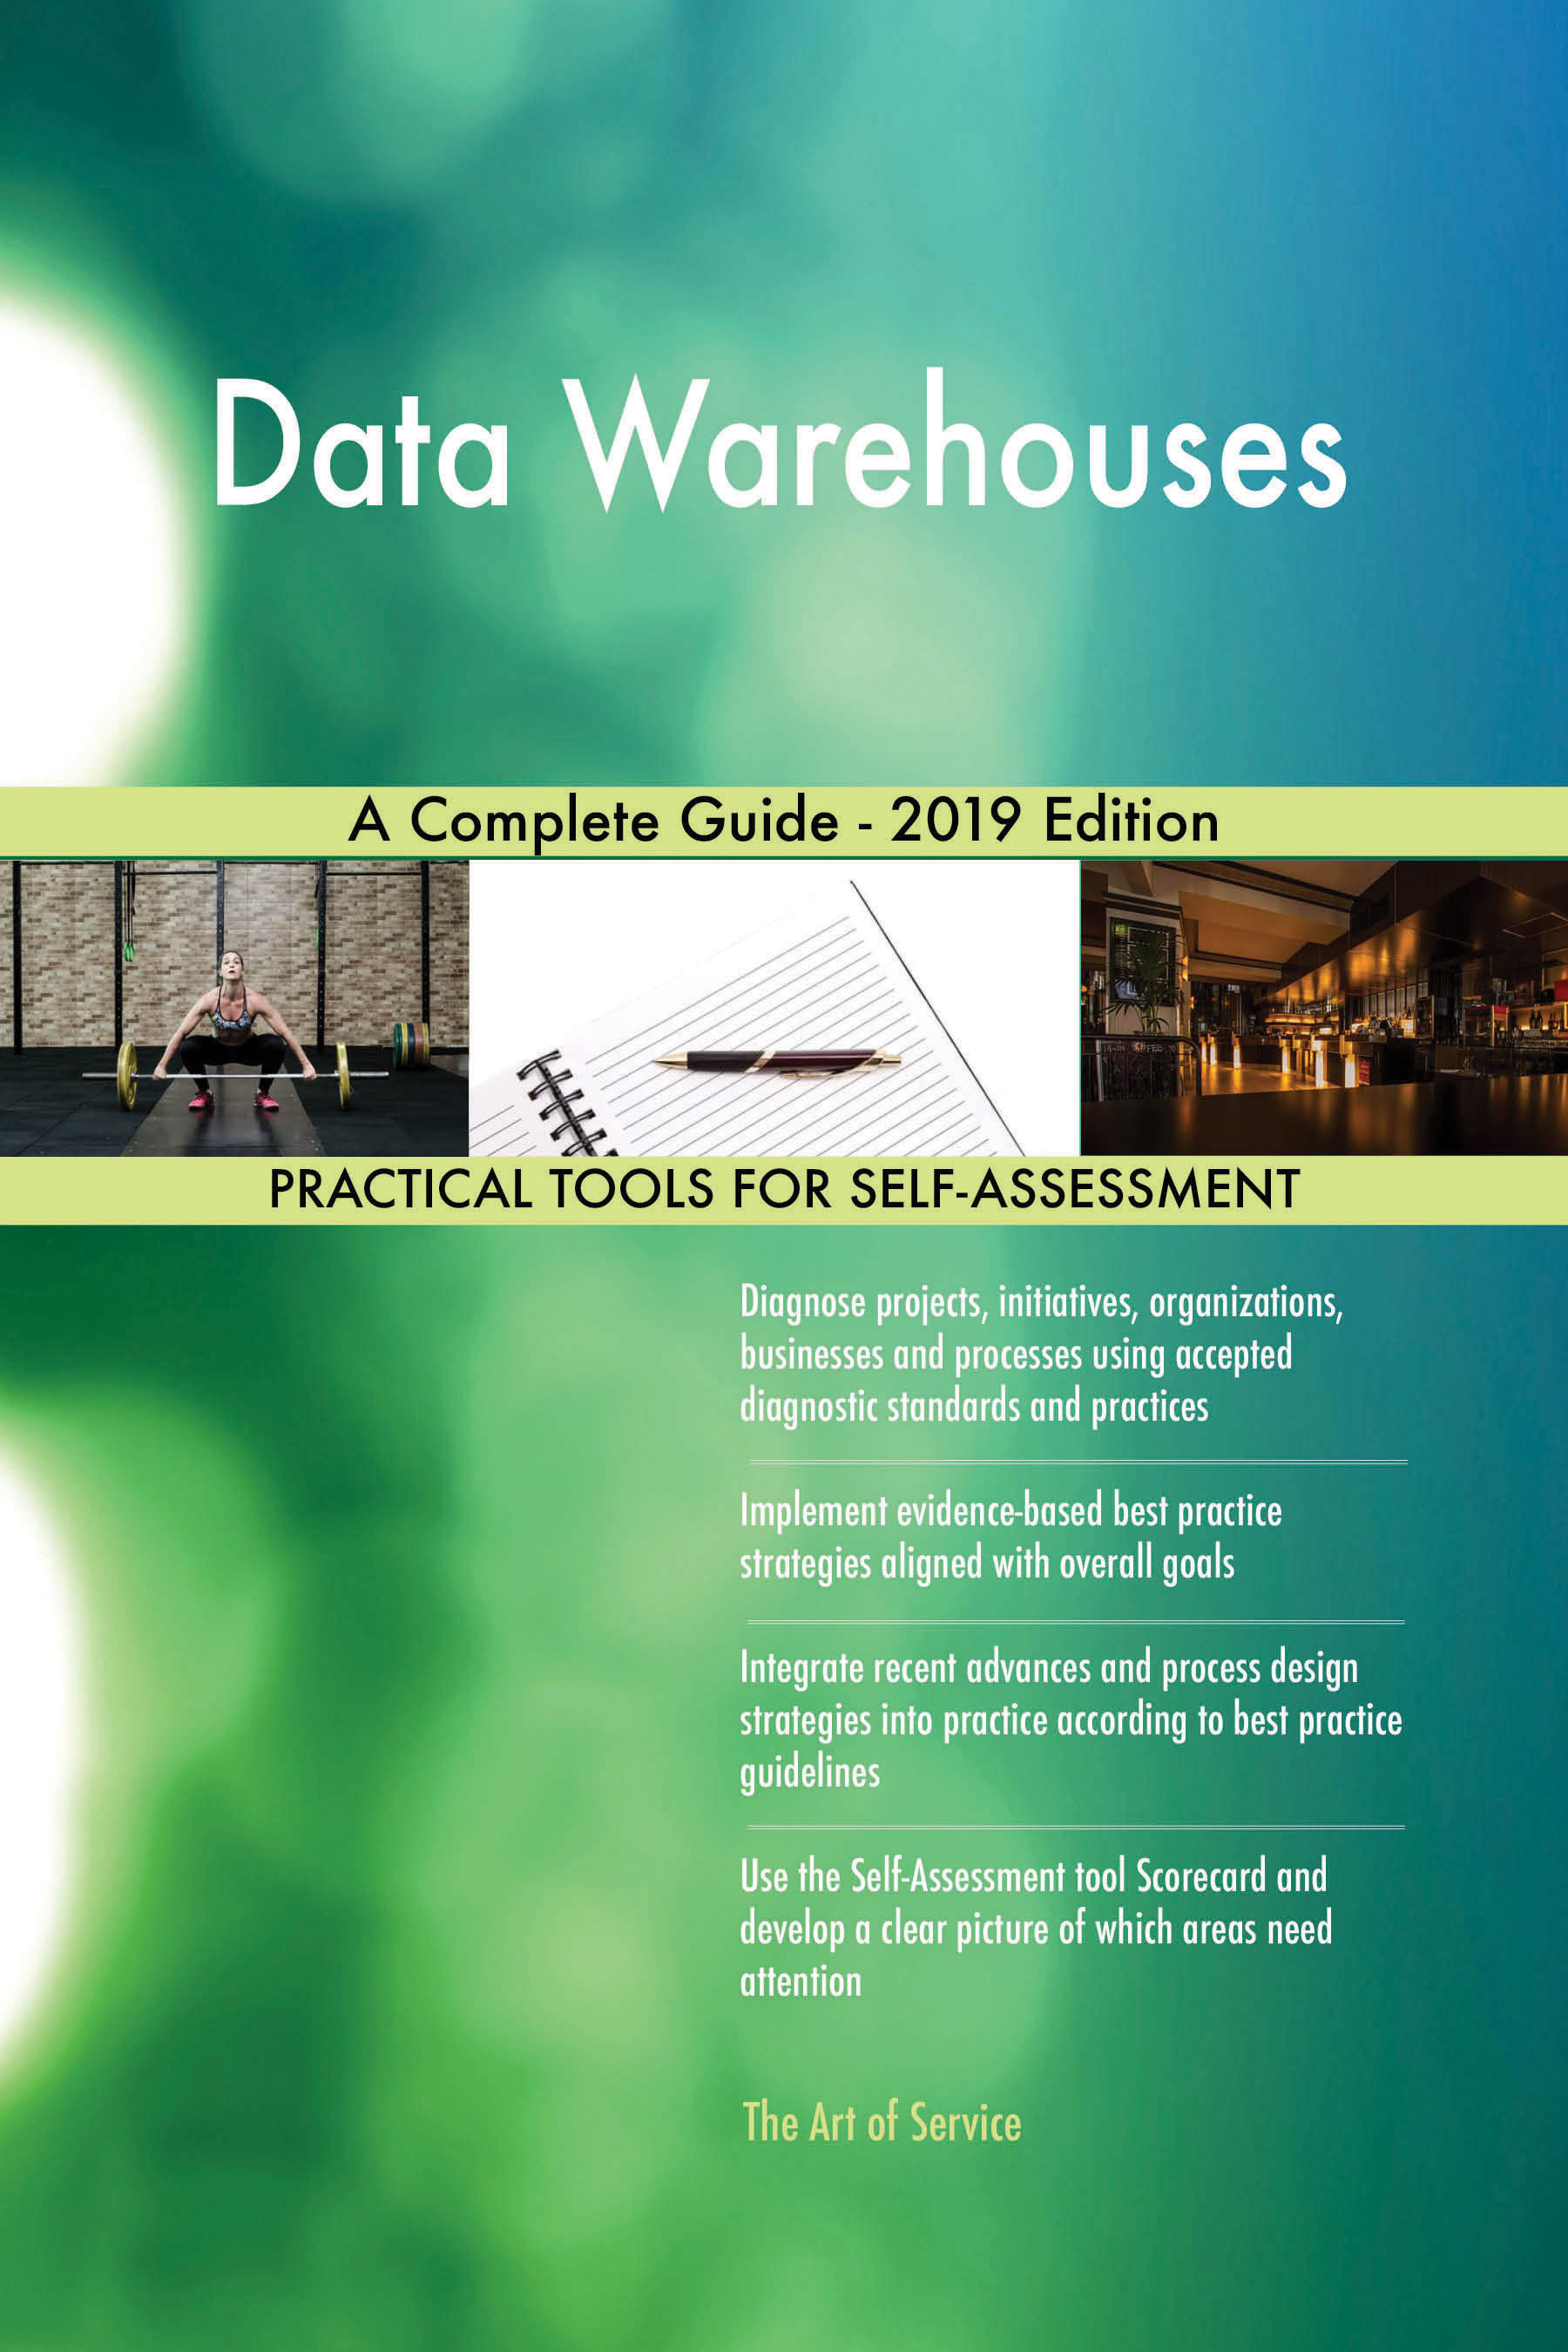 Data Warehouses A Complete Guide - 2019 Edition | BUKU - Study ...